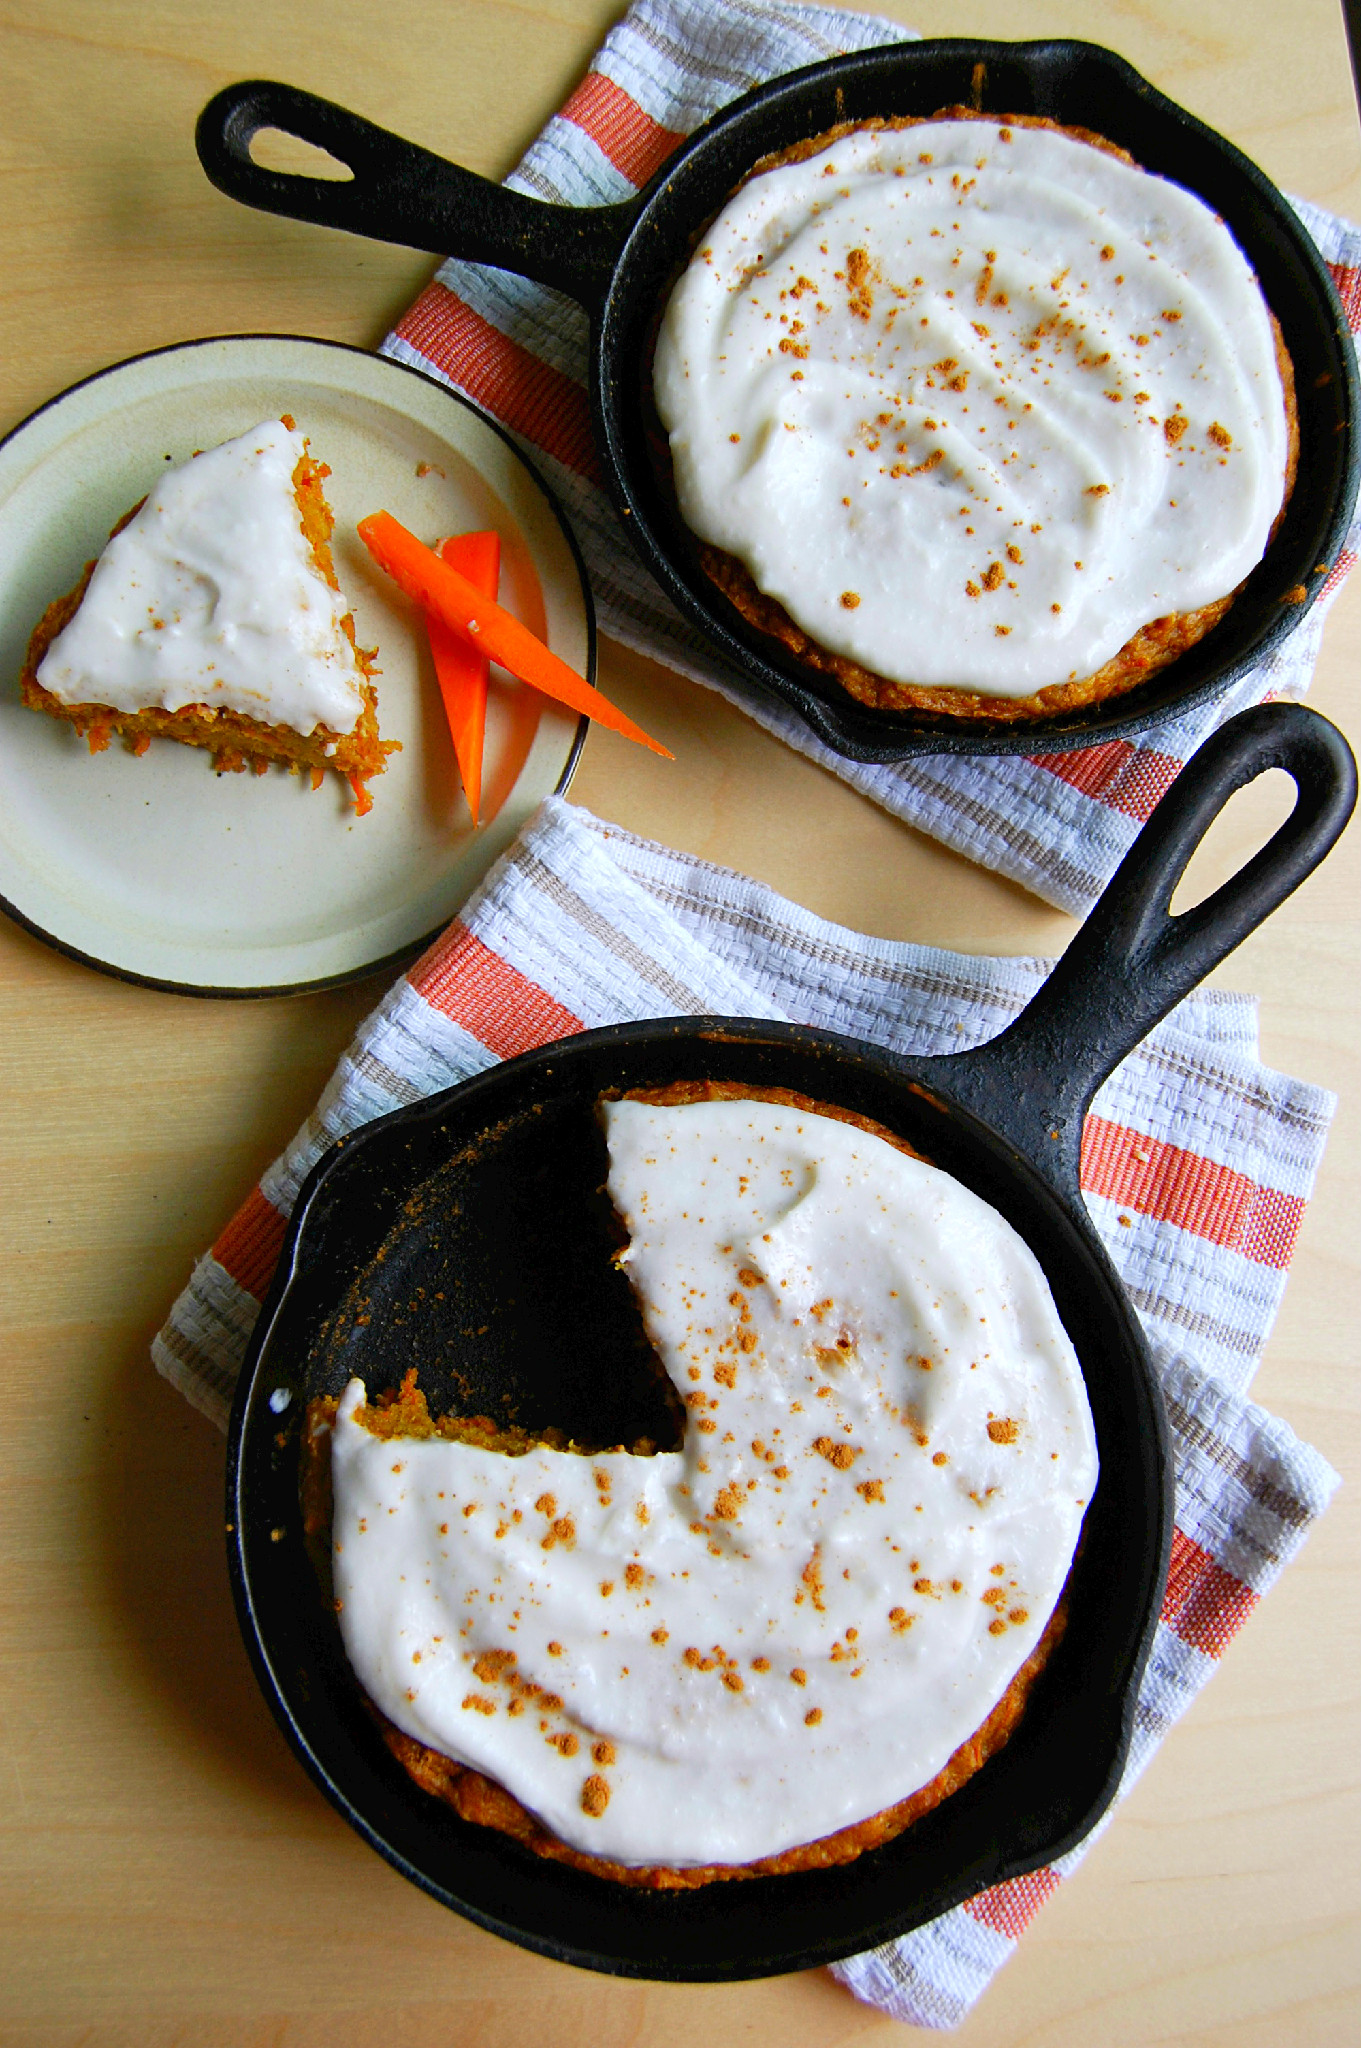 Mini Skillet Carrot Cake with Coconut Cream Icing (vegan) | UprootKitchen.com